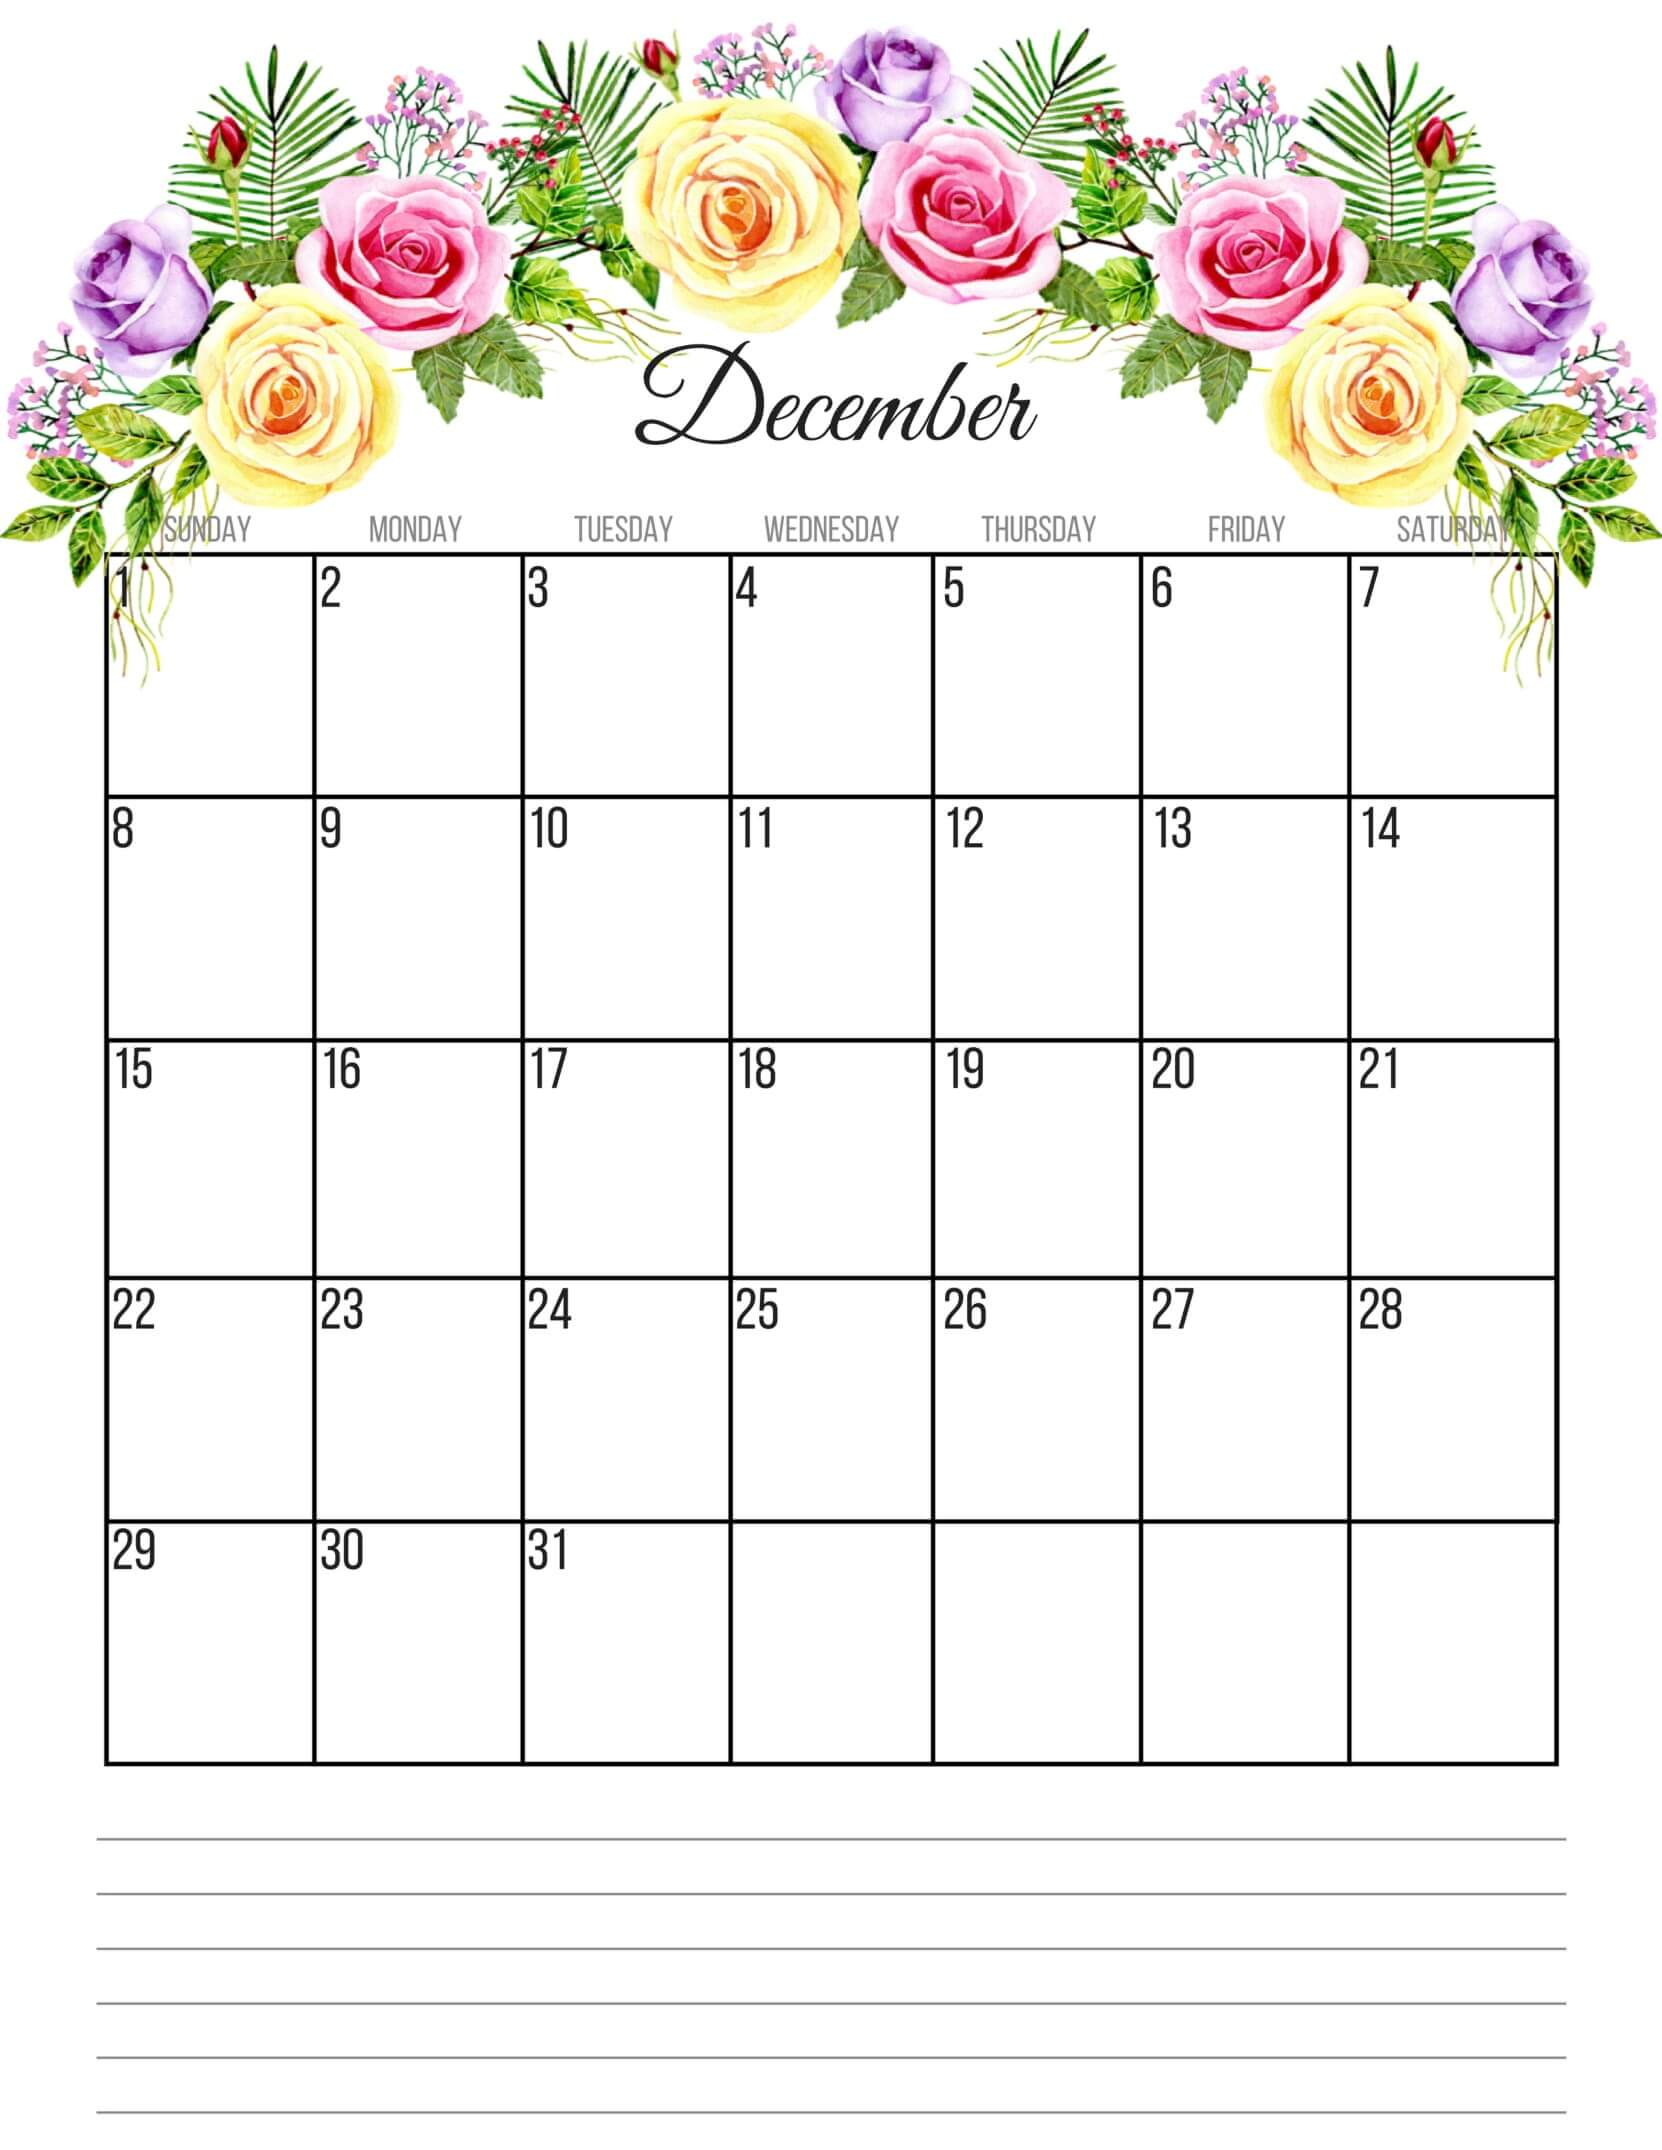 Cute December 2019 Calendar With Notes